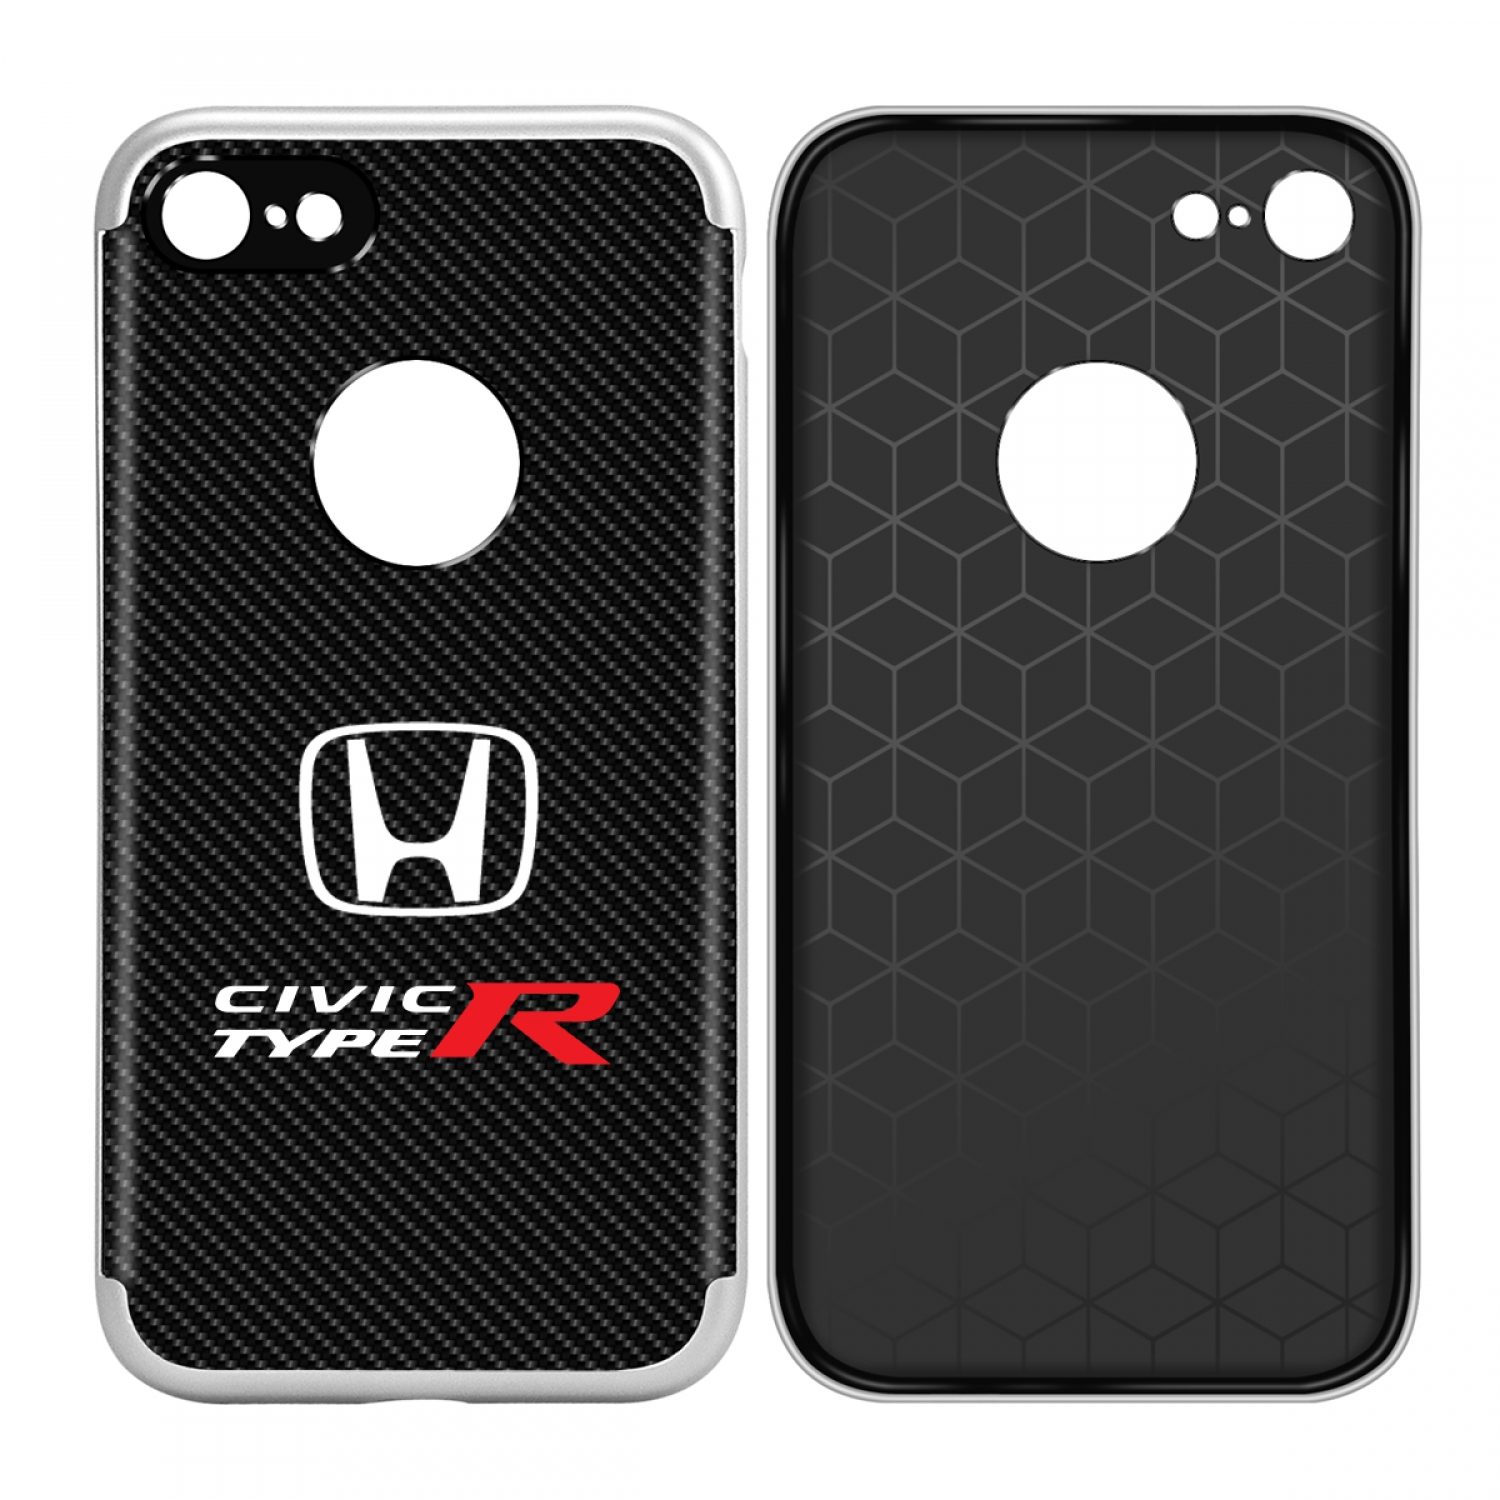 iPhone 7 Case, Honda Civic Type-R Shockproof Black Carbon Fiber Textures Cell Phone Case